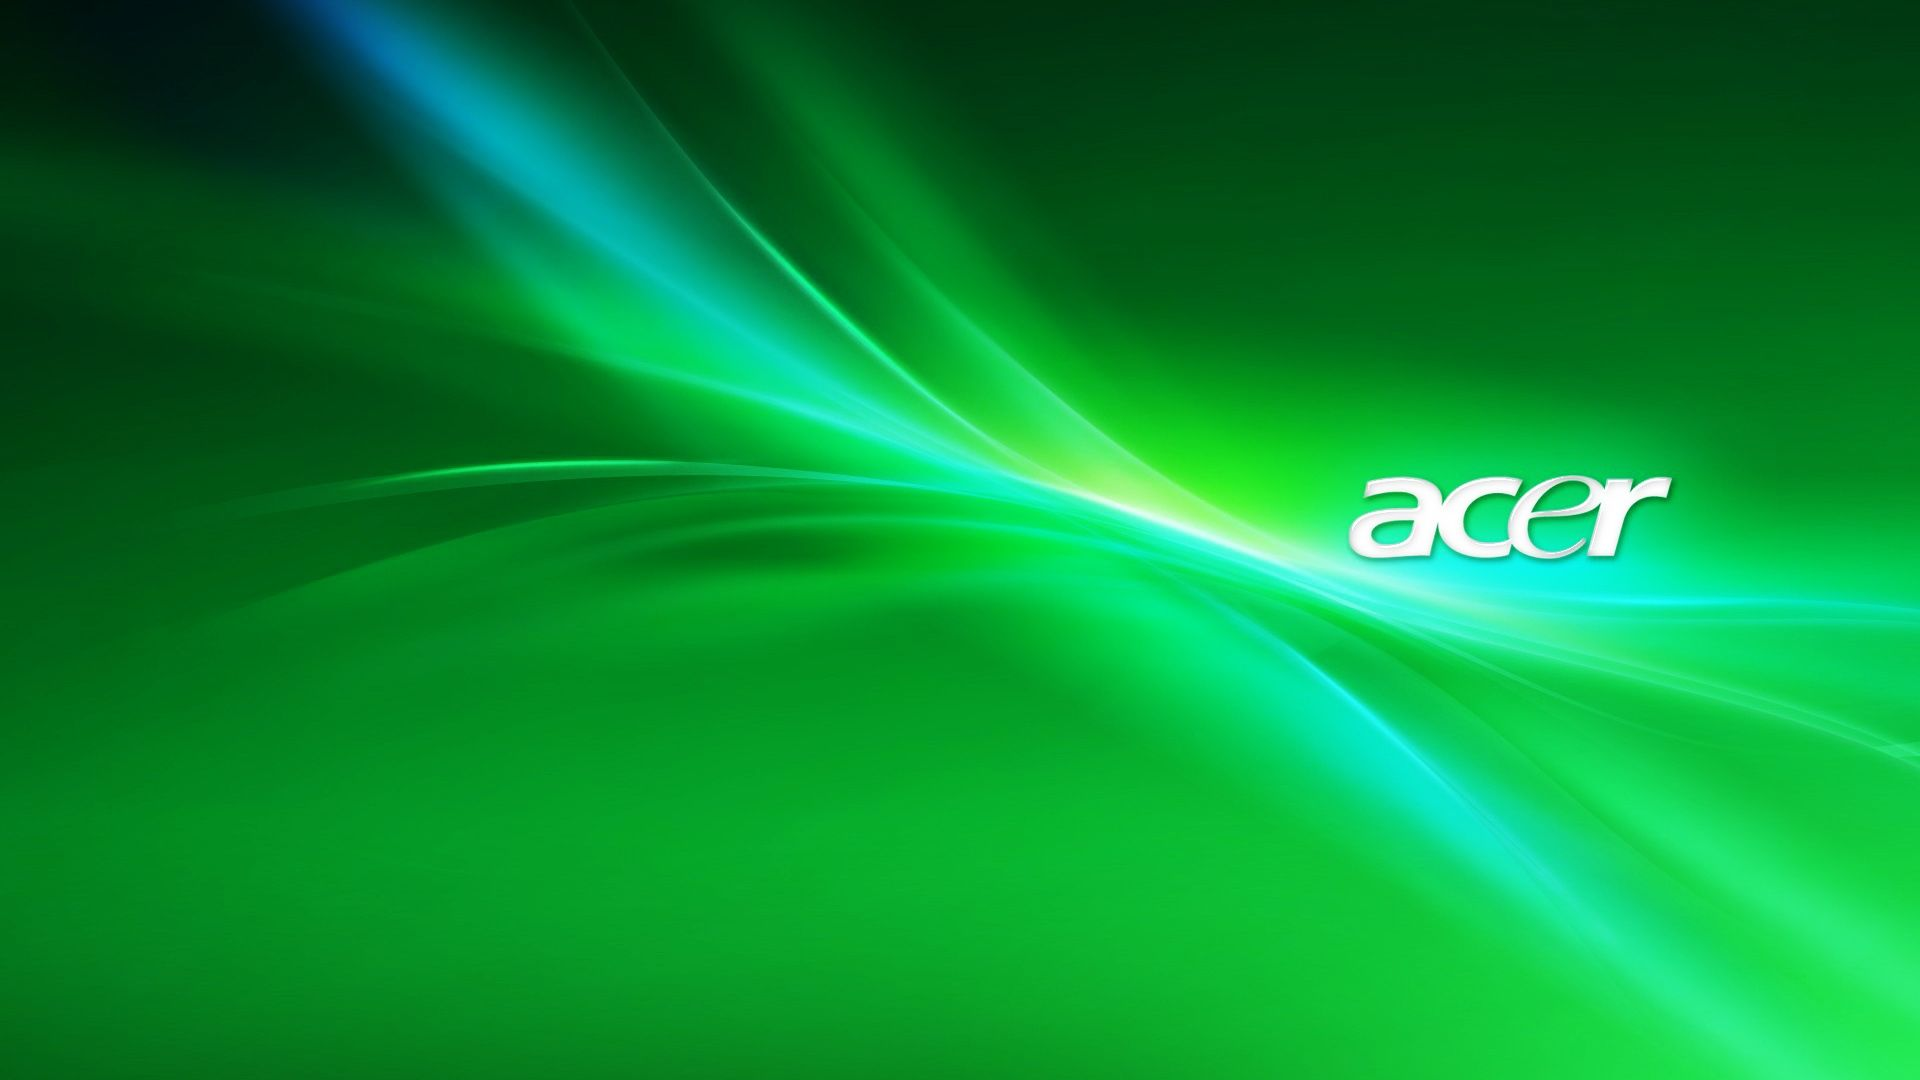 Acer full hd wallpaper